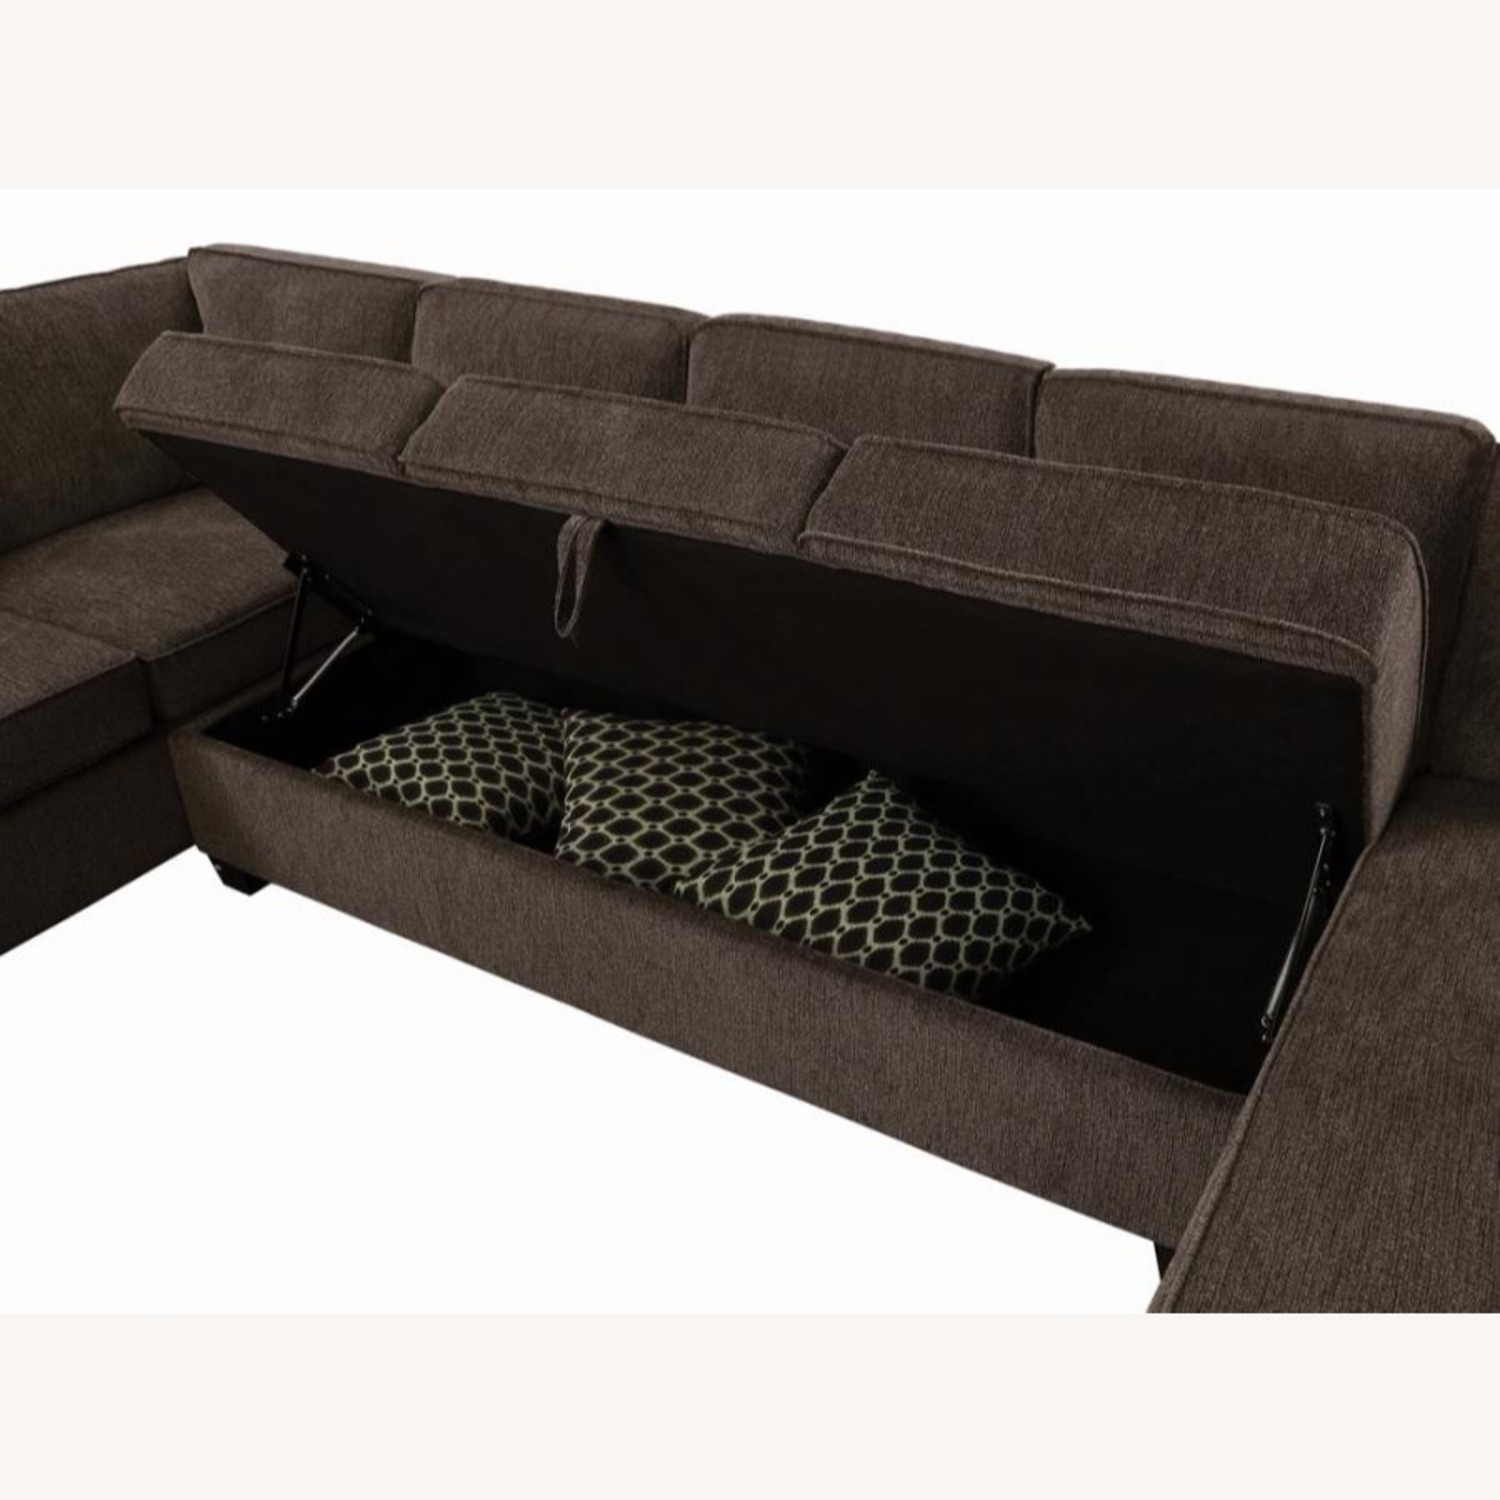 Sectional In Multi-Tonal Brown Chenille Upholstery - image-5